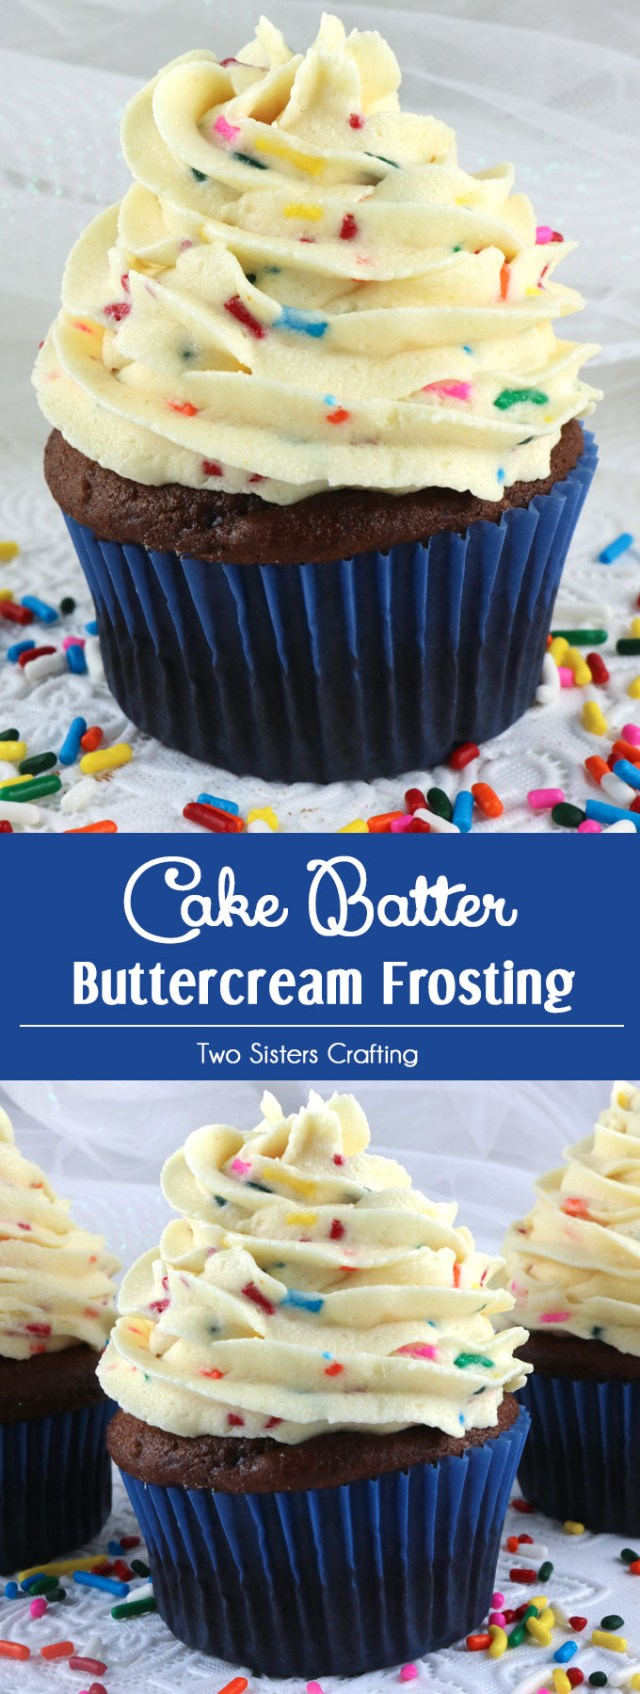 Birthday Cake Frosting Cake Batter Buttercream Frosting Two Sisters